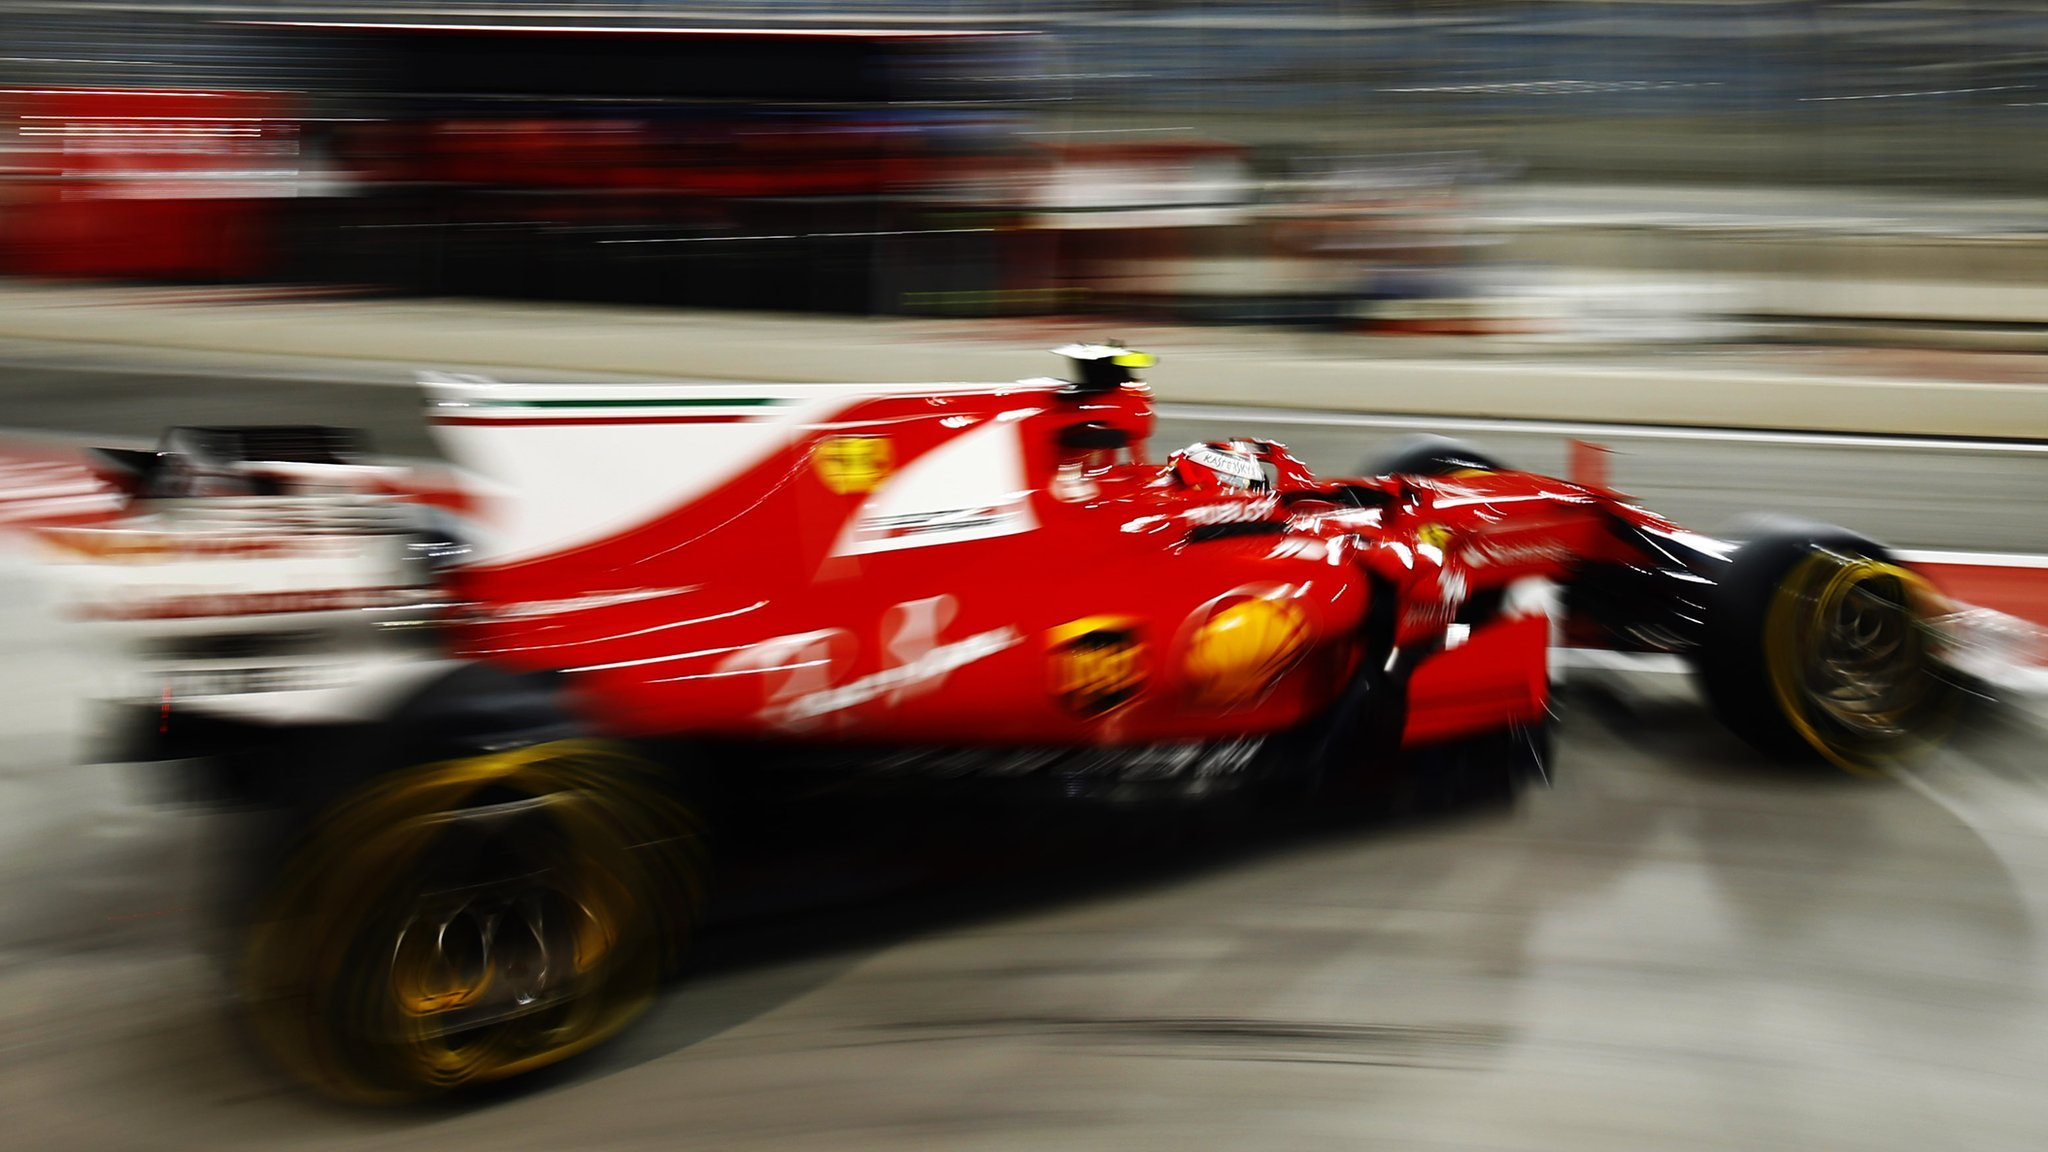 The car's the star: Why Ferrari are fast again - and why it's good for F1